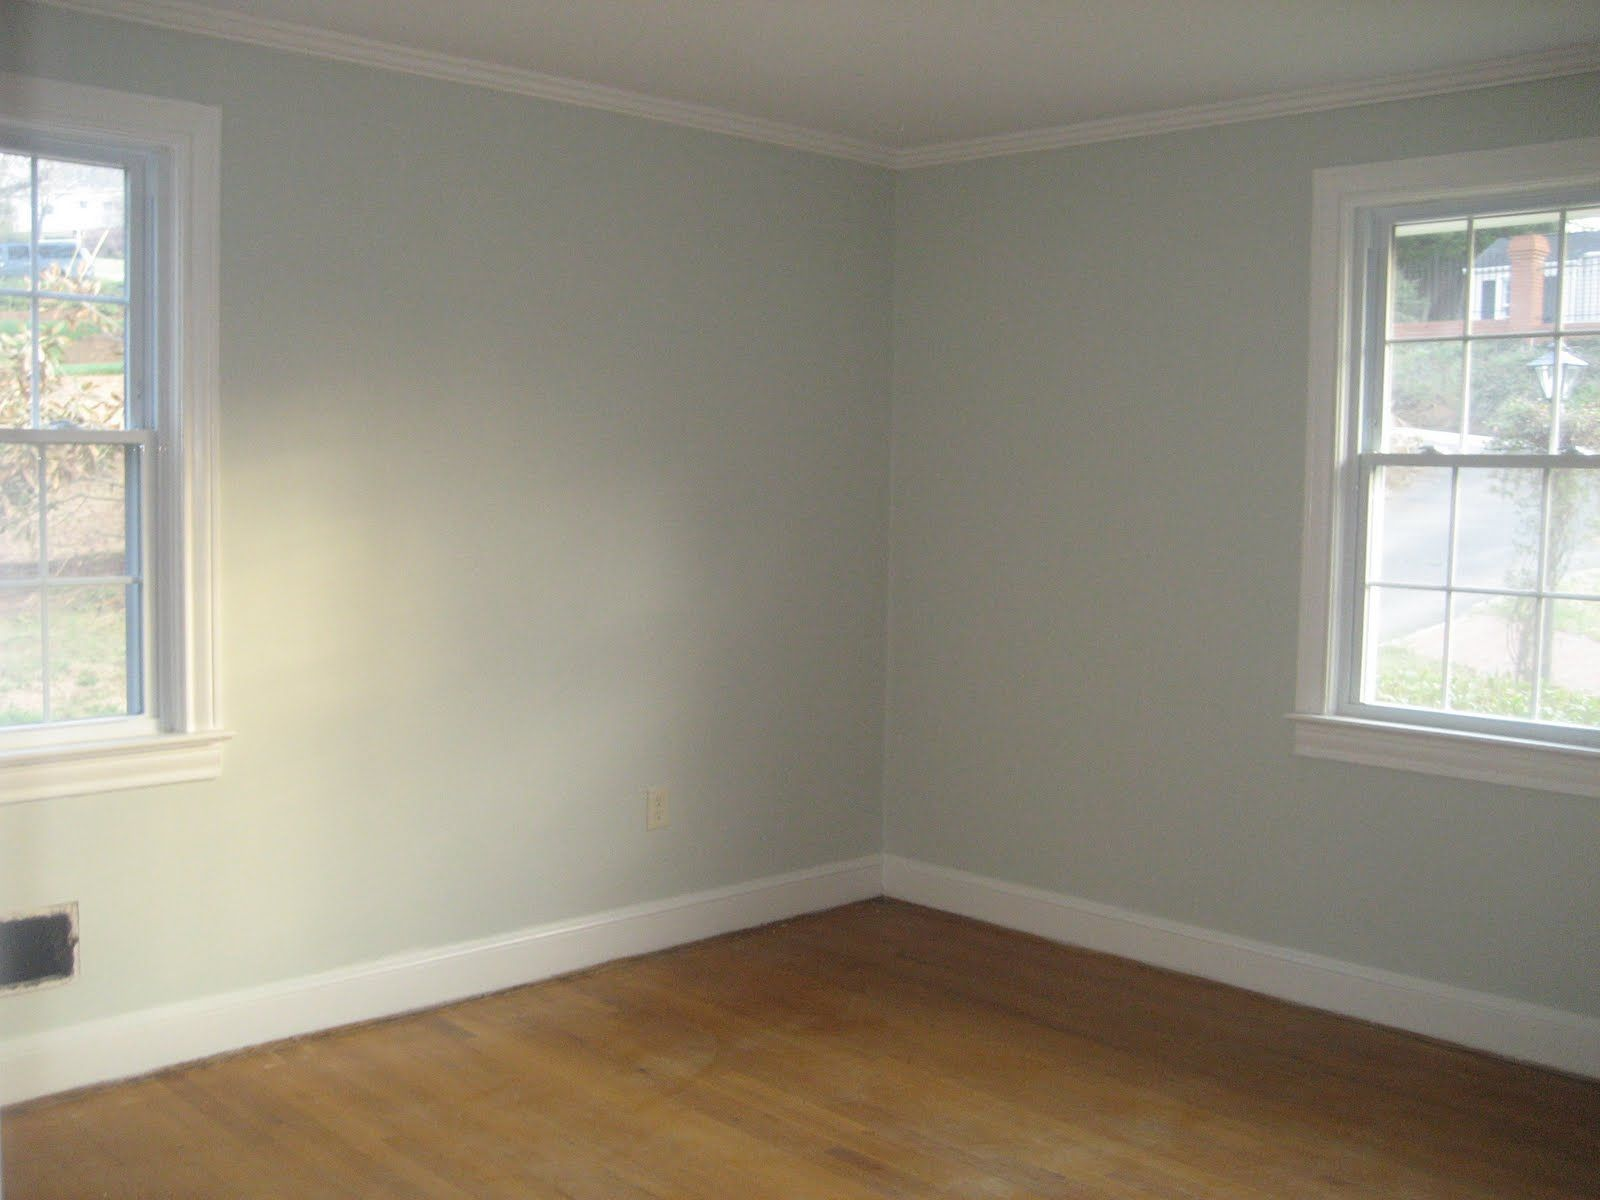 Benjamin Moore Paint (one shade lighter than Quiet Moments 1563 ...